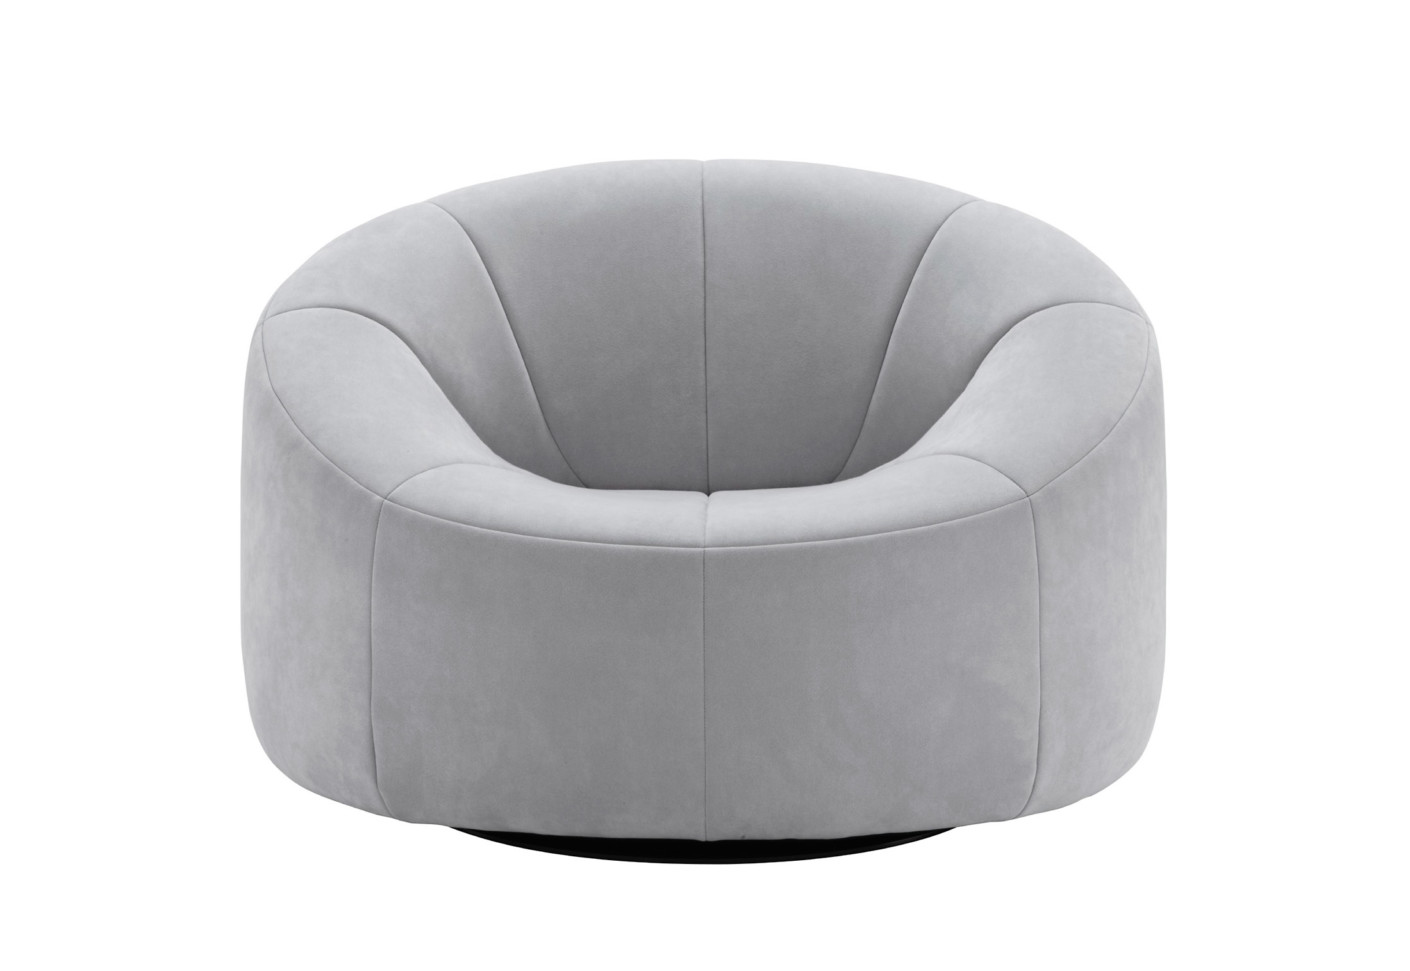 swivel chair outdoor oversized white pumpkin armchair by ligne roset | stylepark